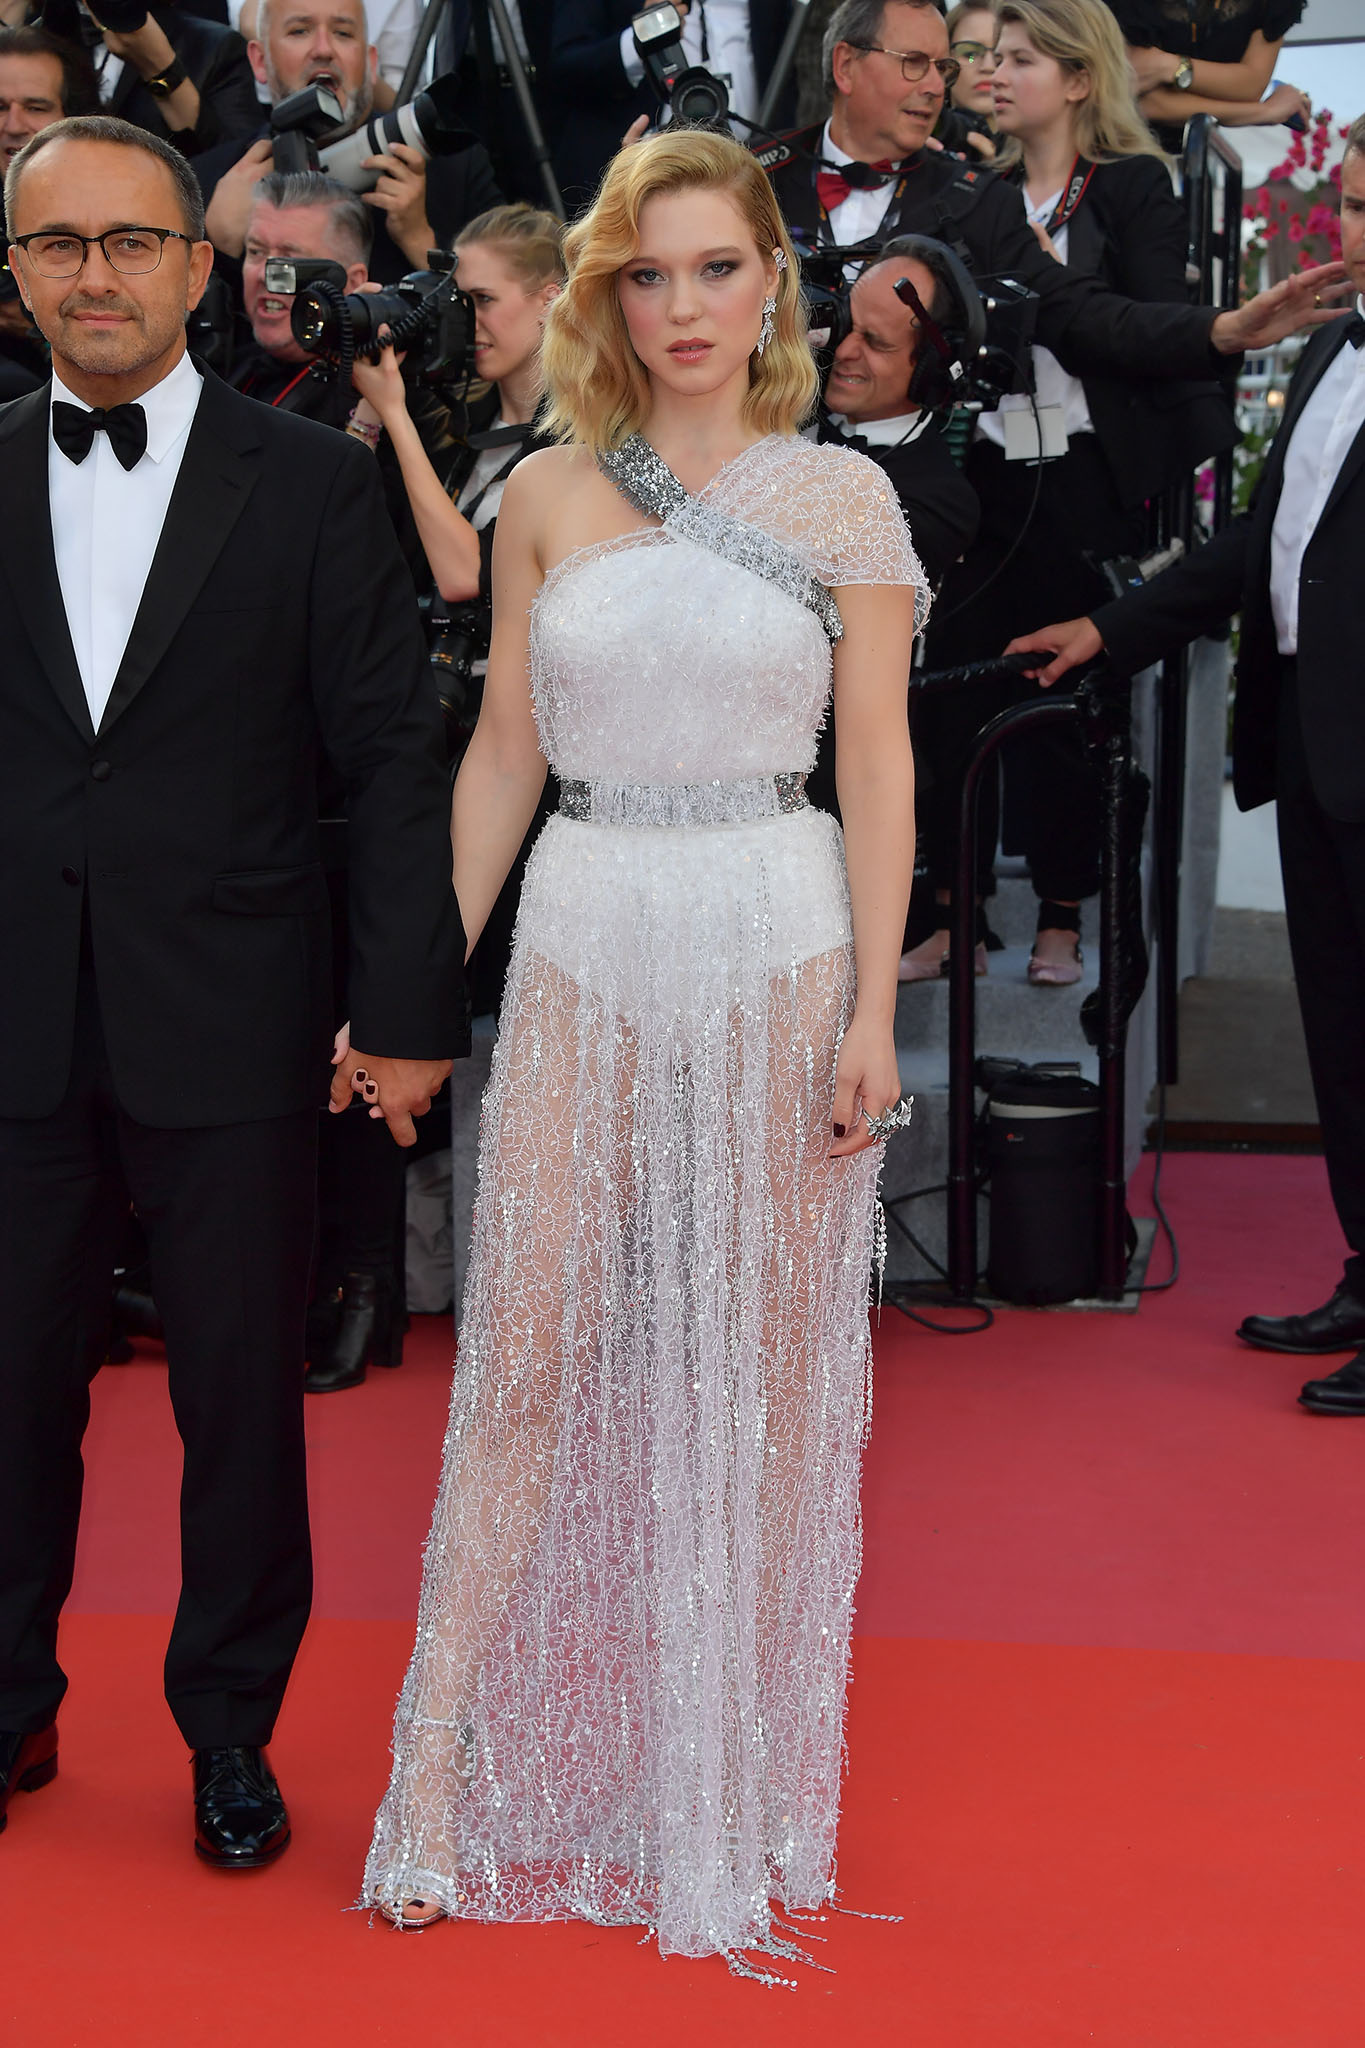 Jury member Léa Seydoux in a custom-made silk dress embroidered with crystals and beads by Louis Vuitton.